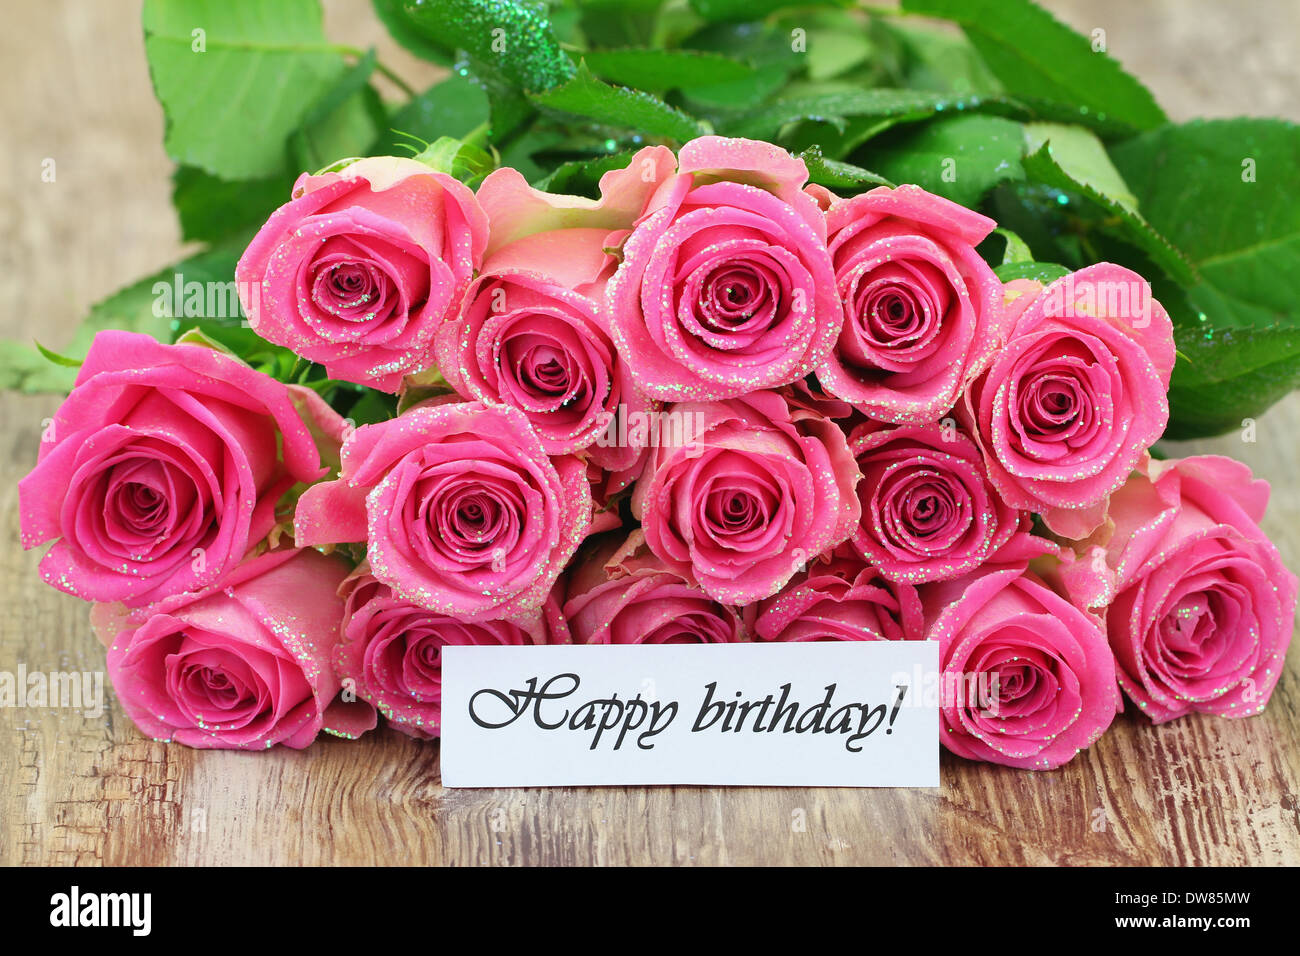 Happy birthday card with bouquet of pink roses Photo – Birthday Greetings with Roses